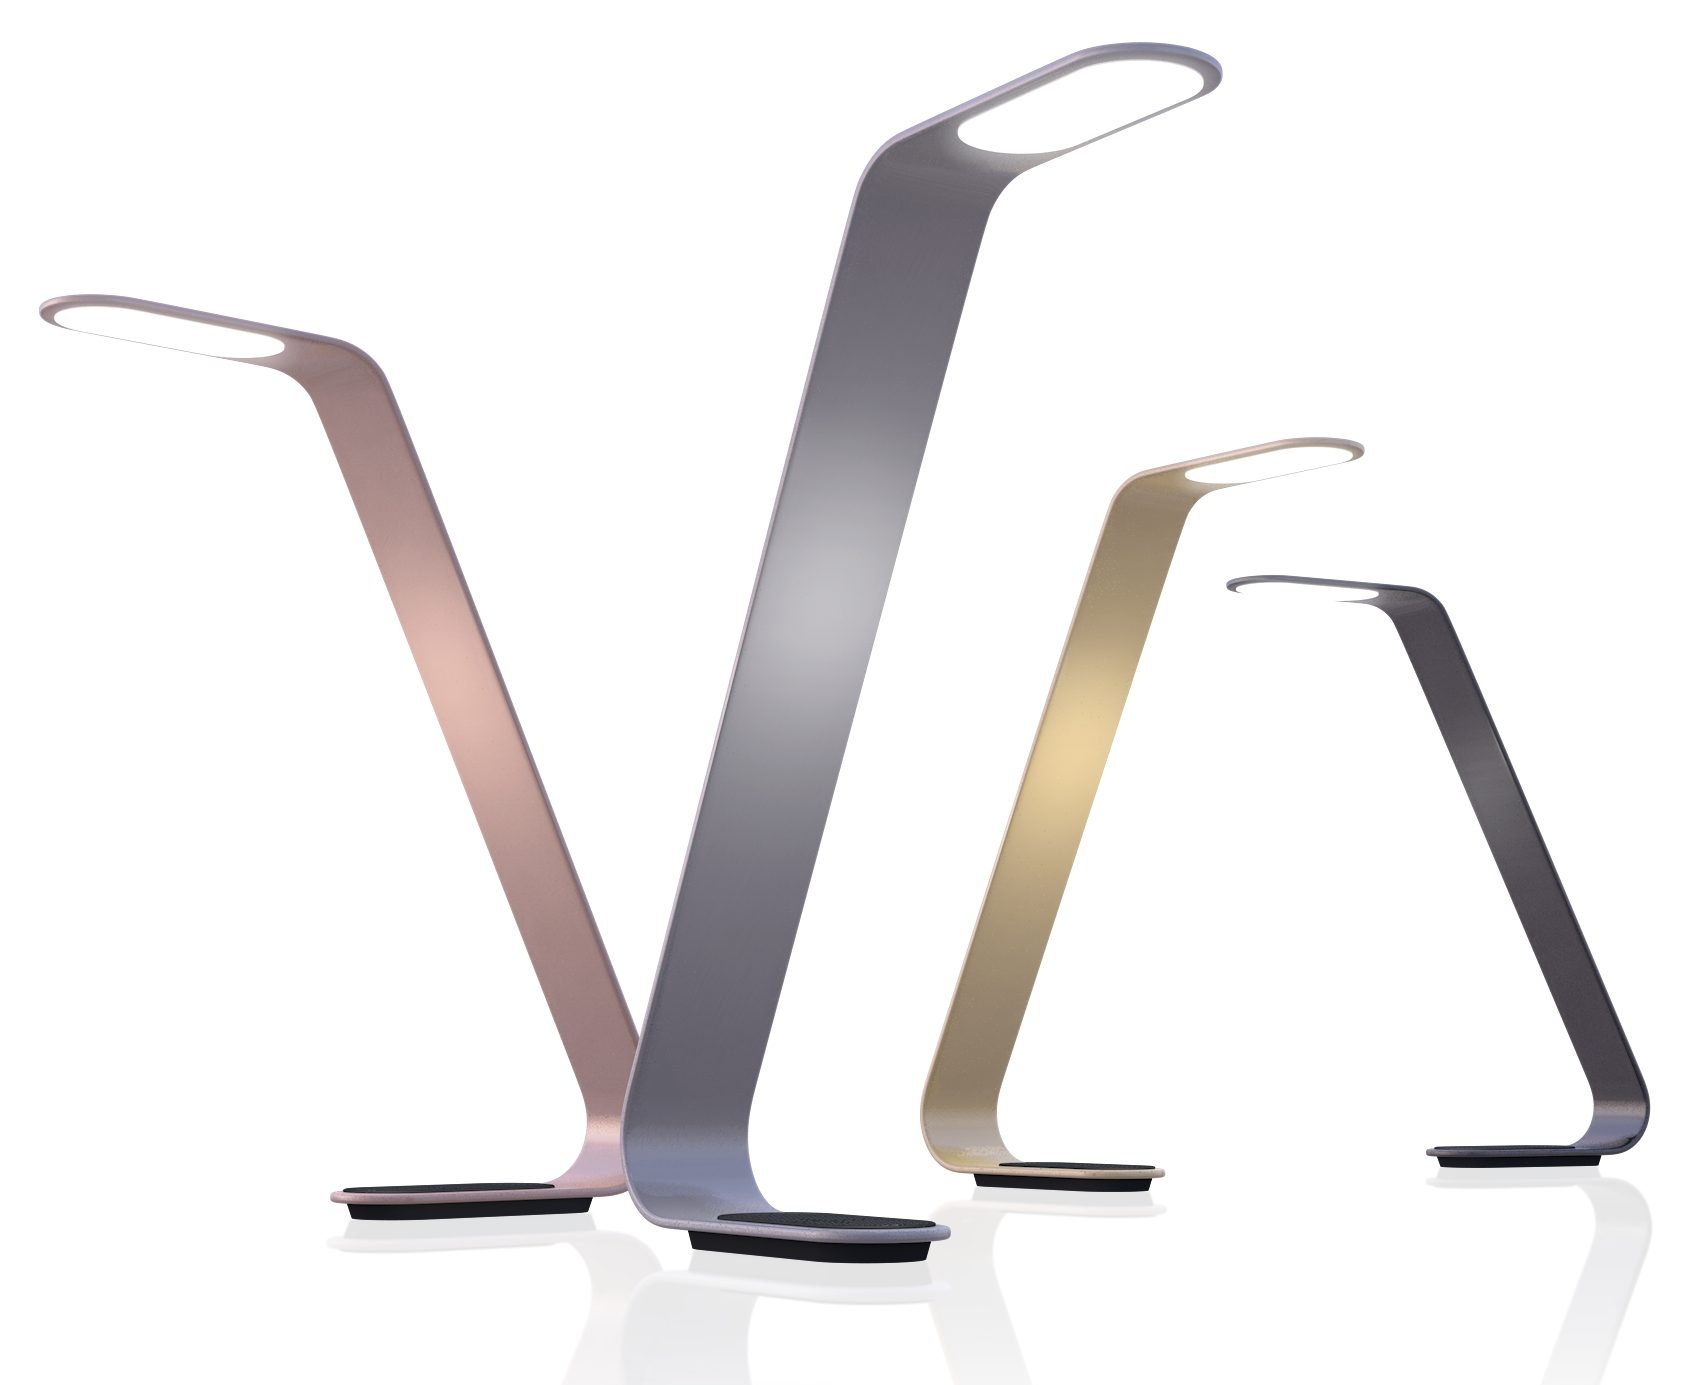 Clean Light's The Lamp desk lamp in 4 colors